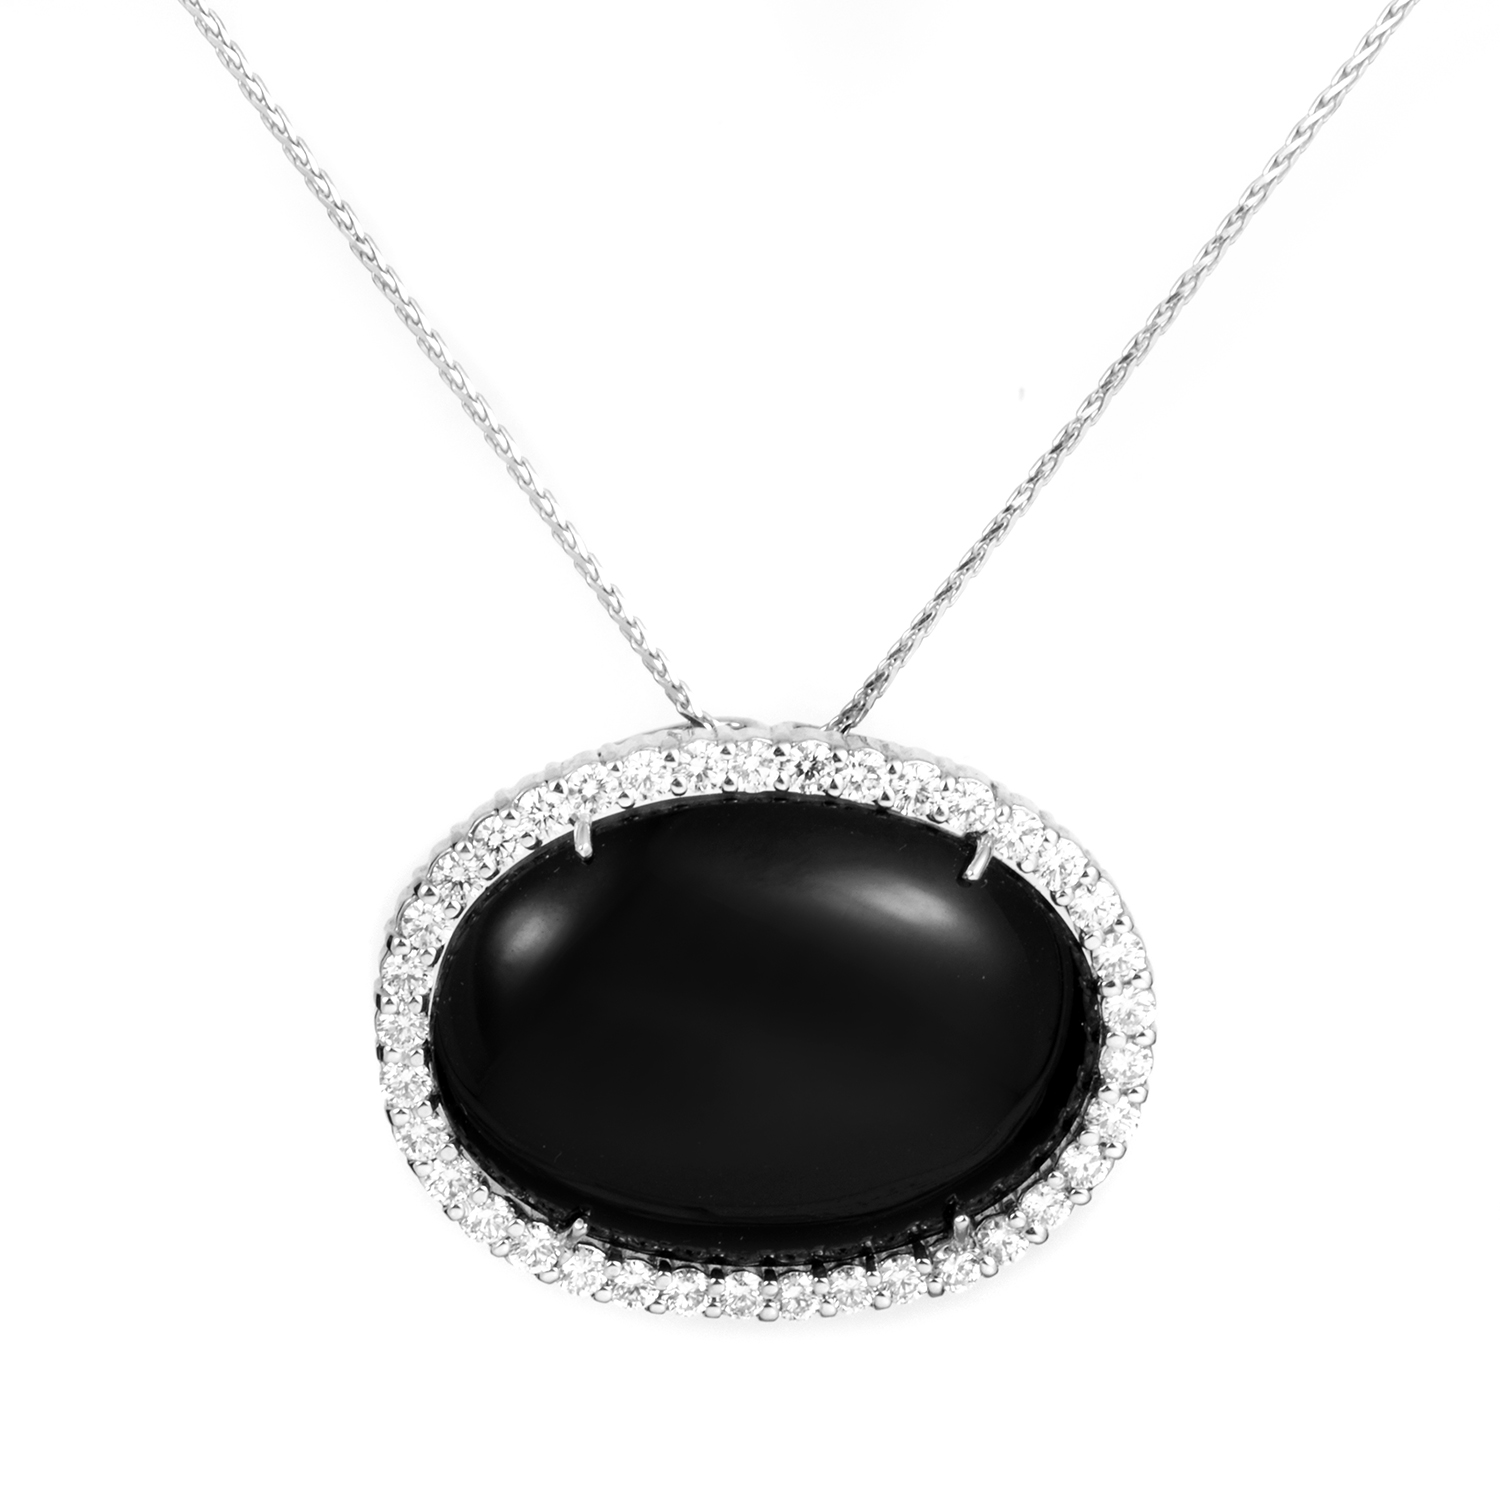 Women's 18K White Gold Diamond & Onyx Pendant Necklace